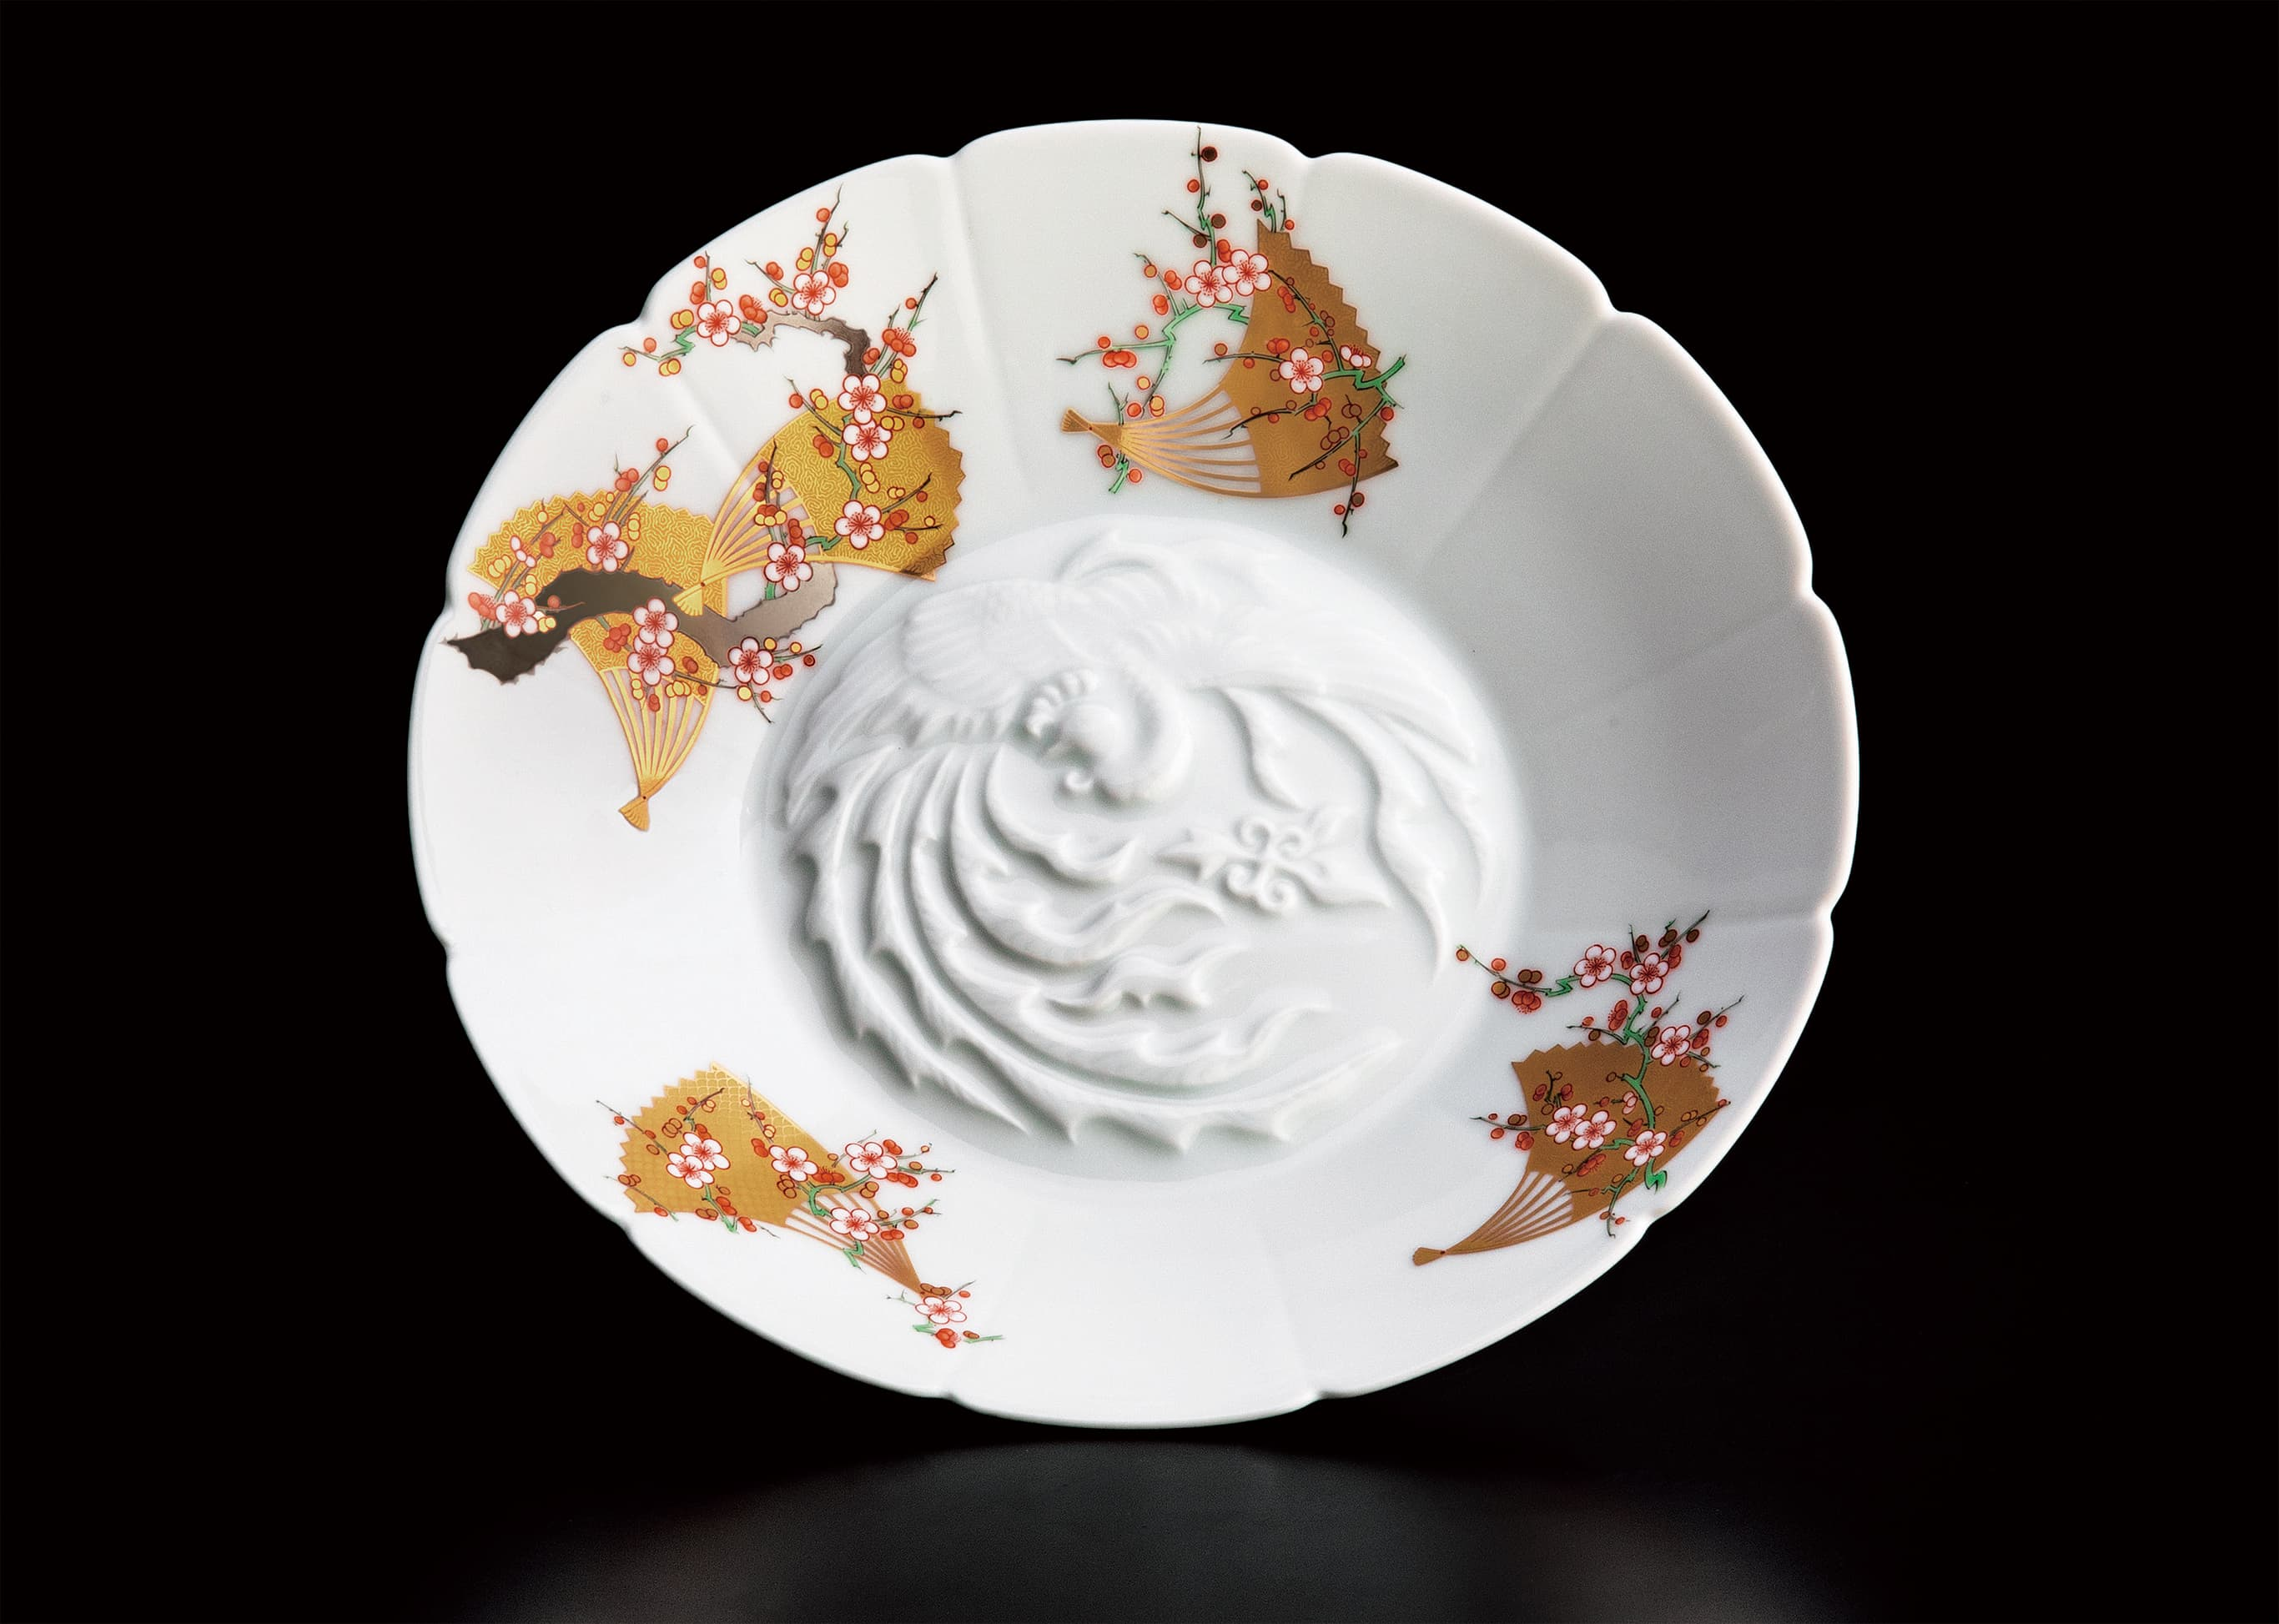 Fukagawa Seiji's Crimson and White Plum and Fan Bas-Relief Moribachi Plate celebrates the new Reiwa Era